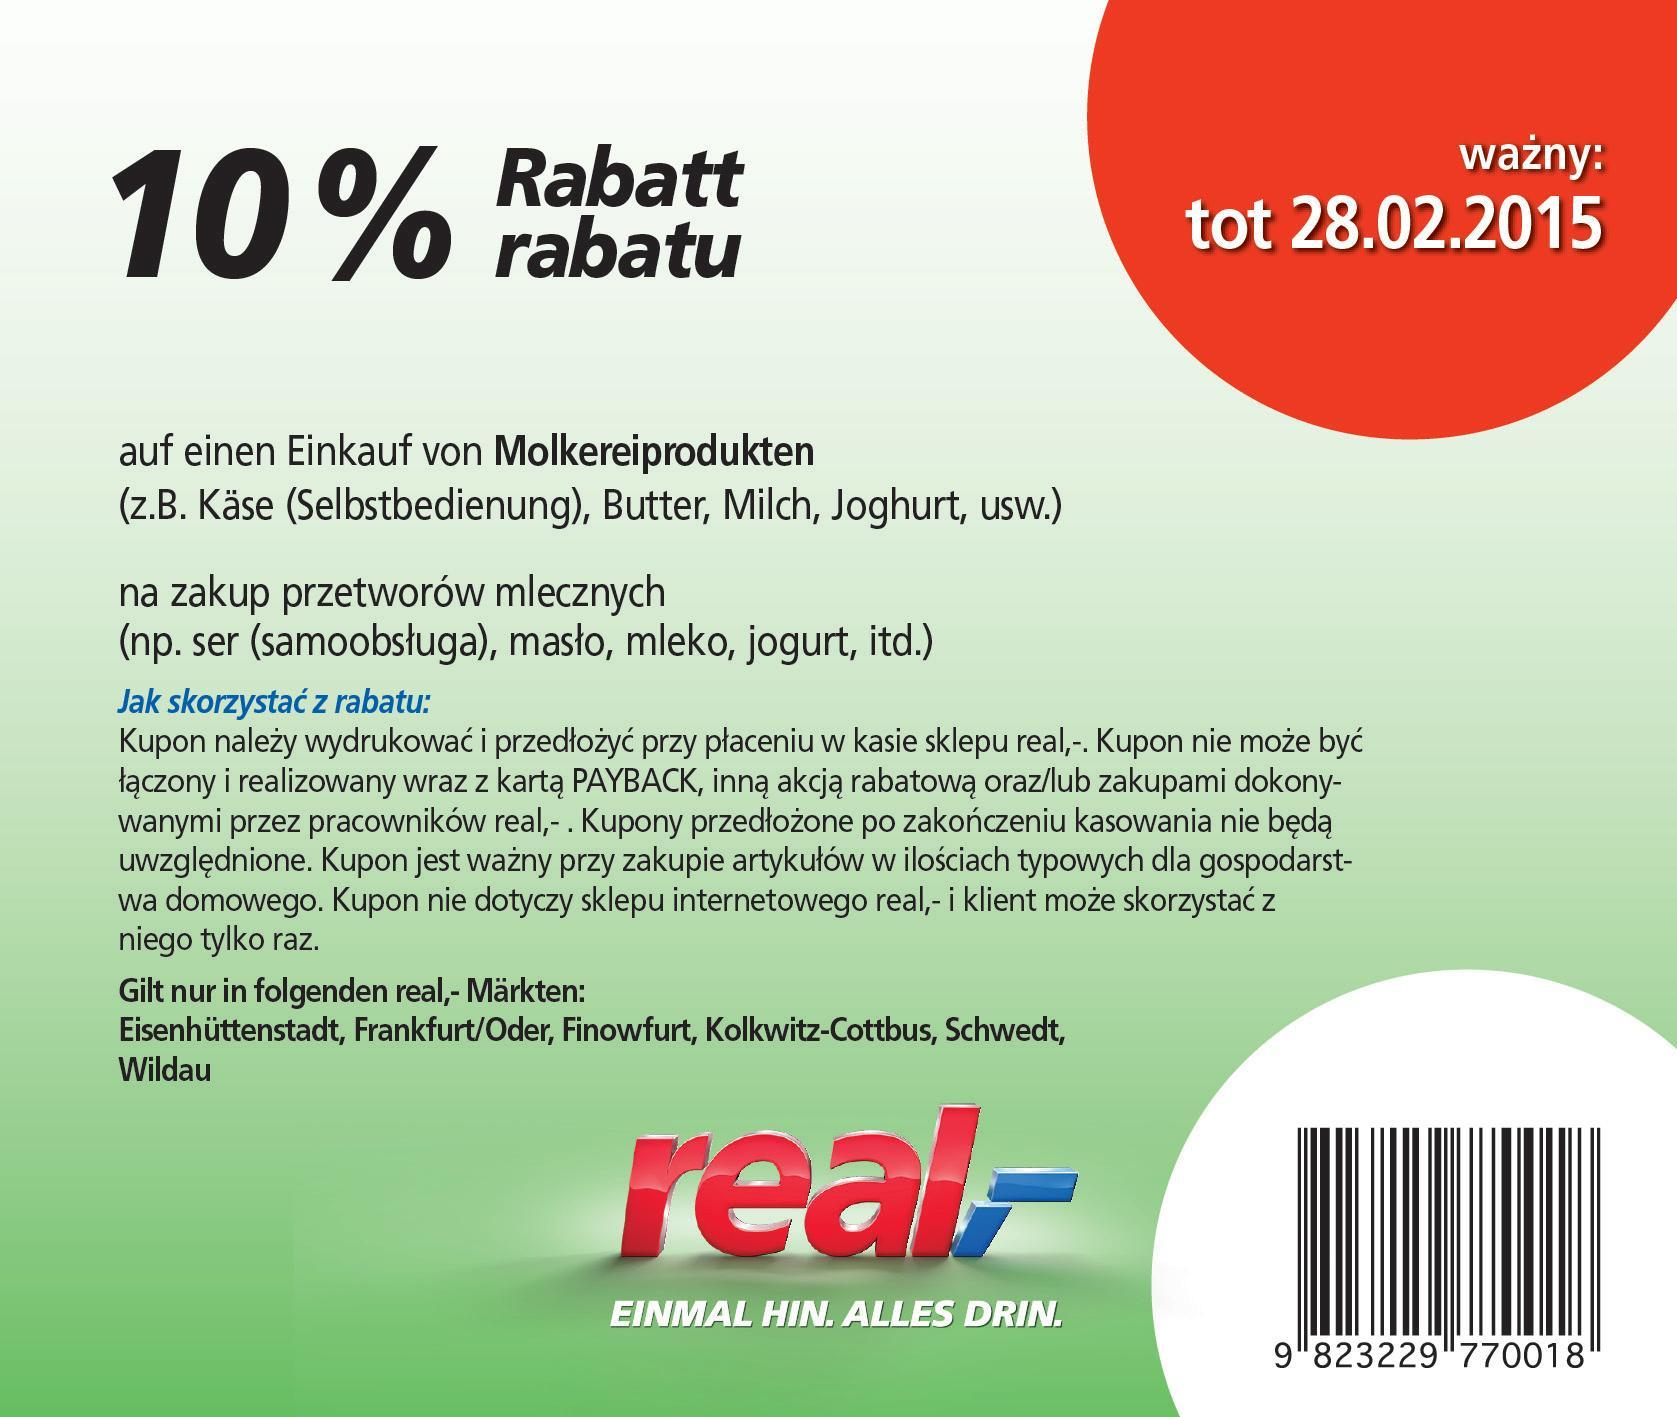 coupons_feb_2015_pl-pgucfq.jpg